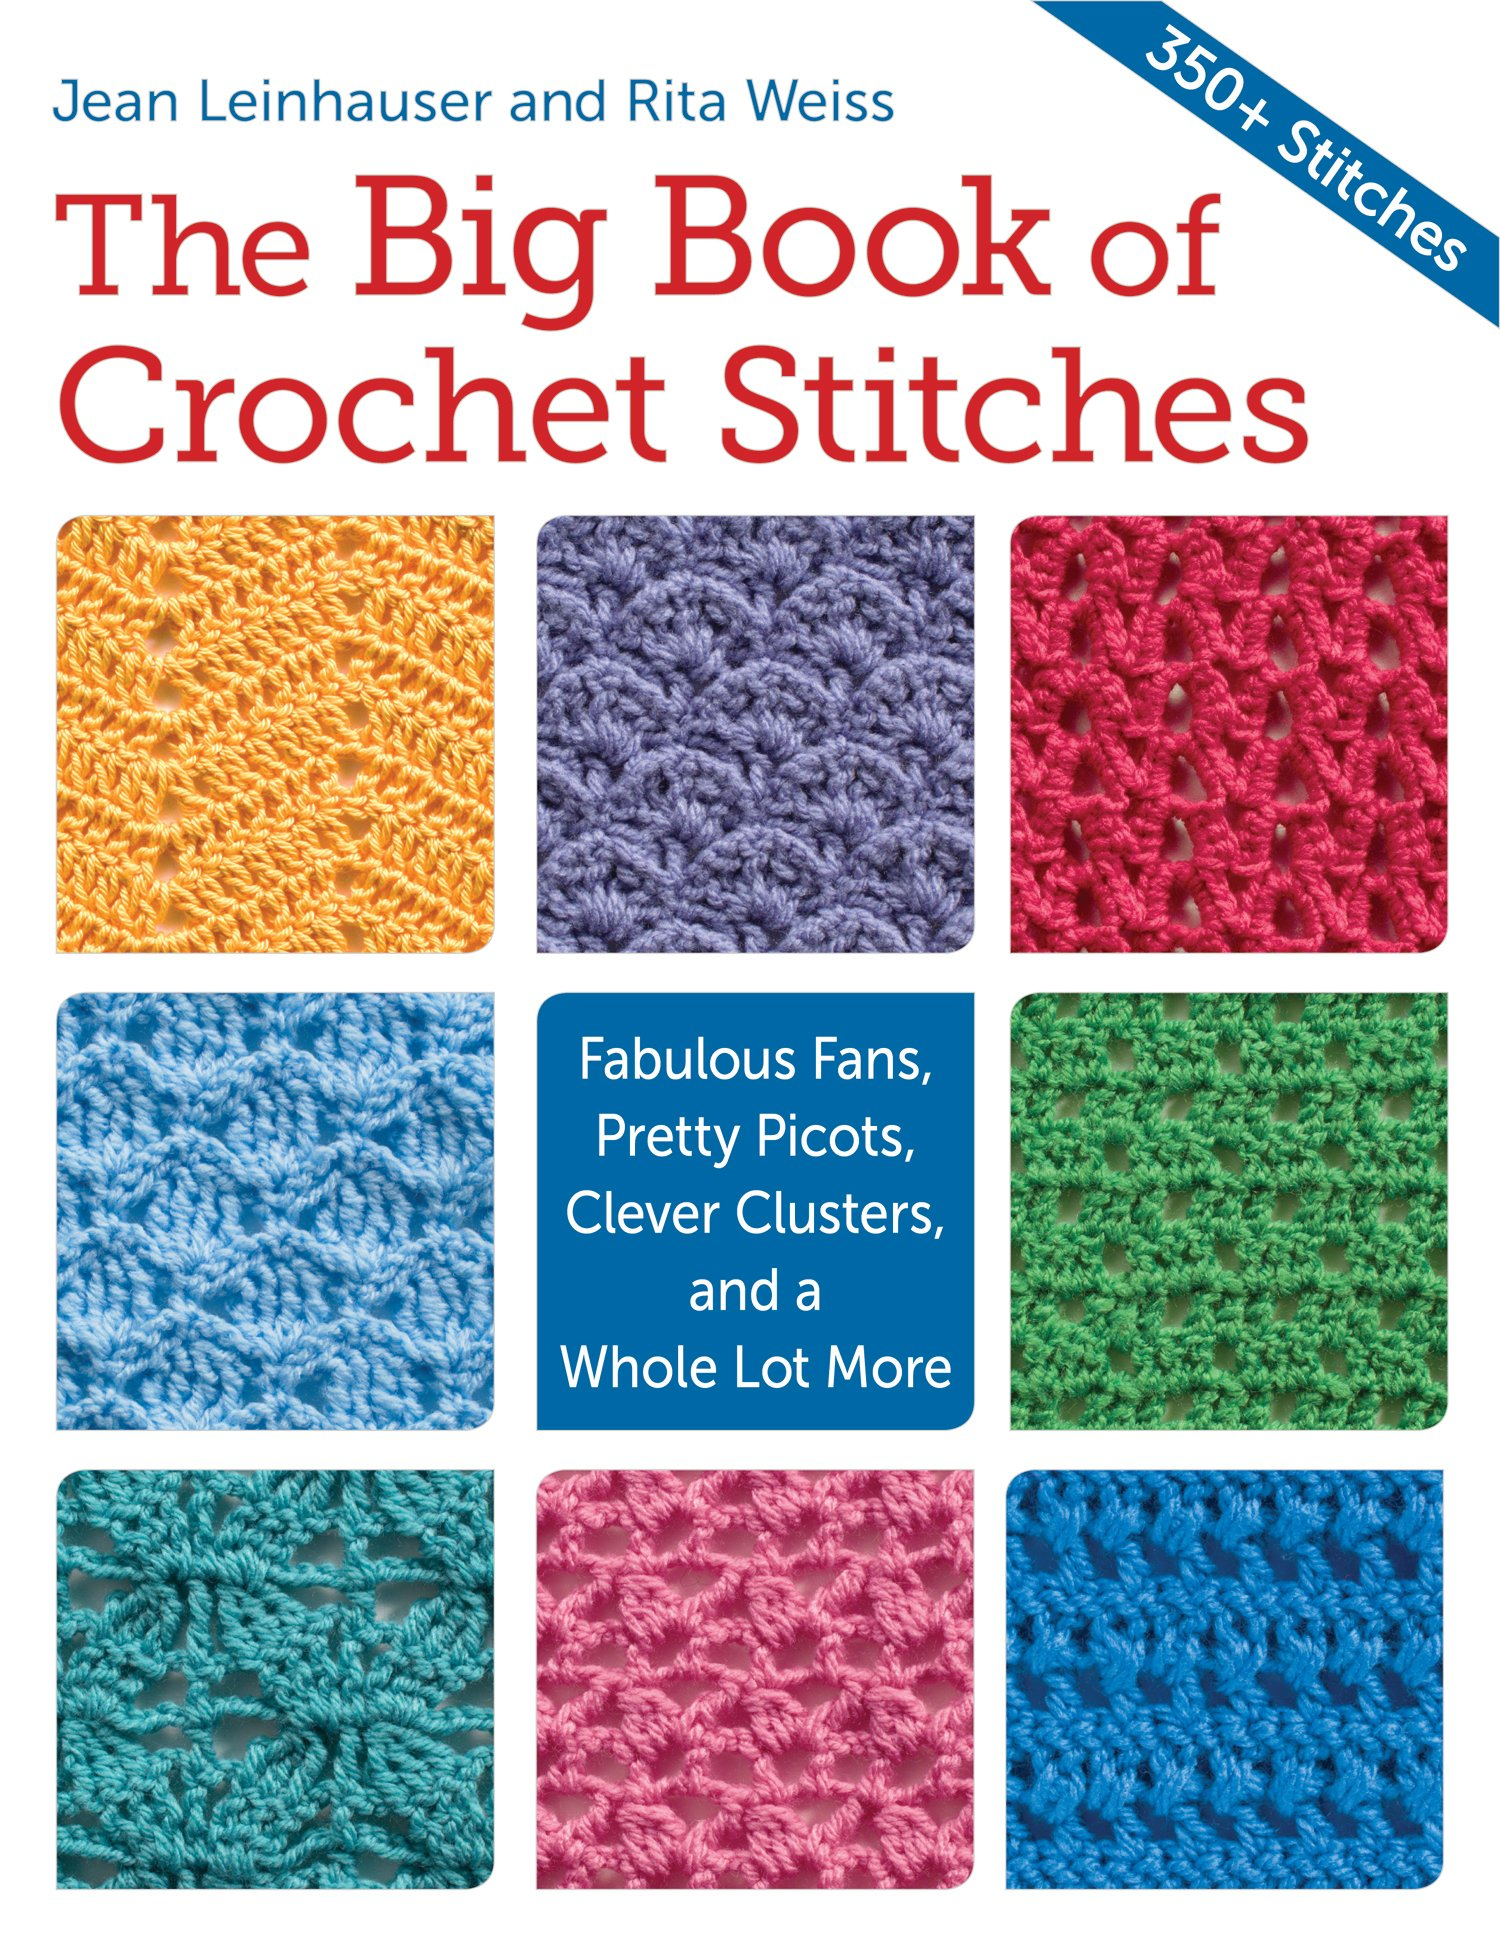 Crochet Stitches On Video : The Big Book of Crochet Stitches ? Oombawka Design Crochet